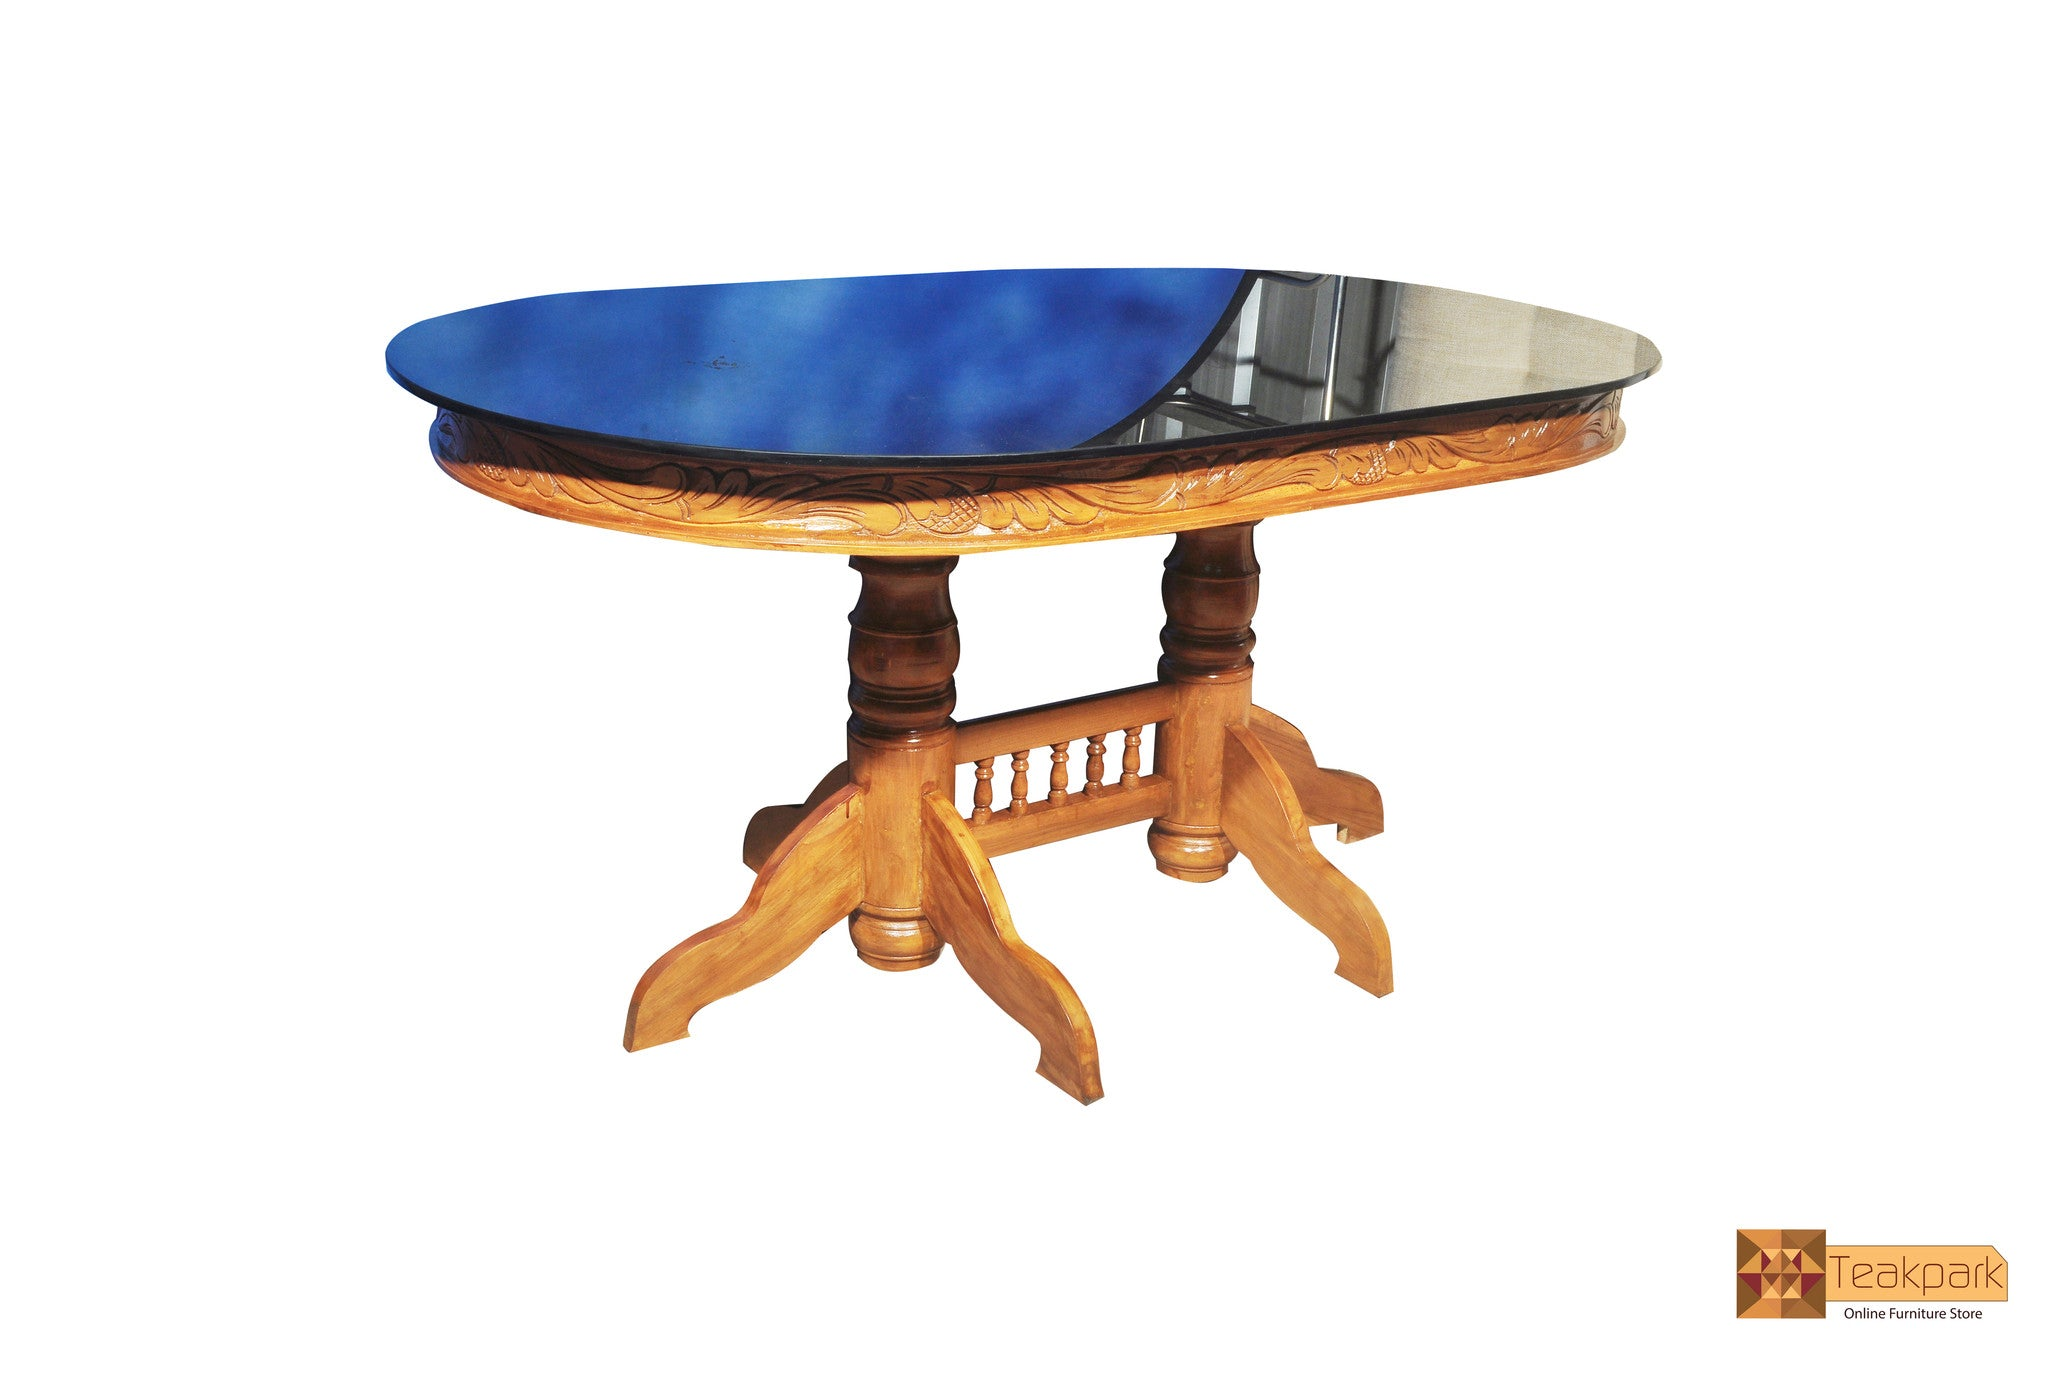 Ganga Oval Teak Wood Dining Table With Glass Top Table Teakpark